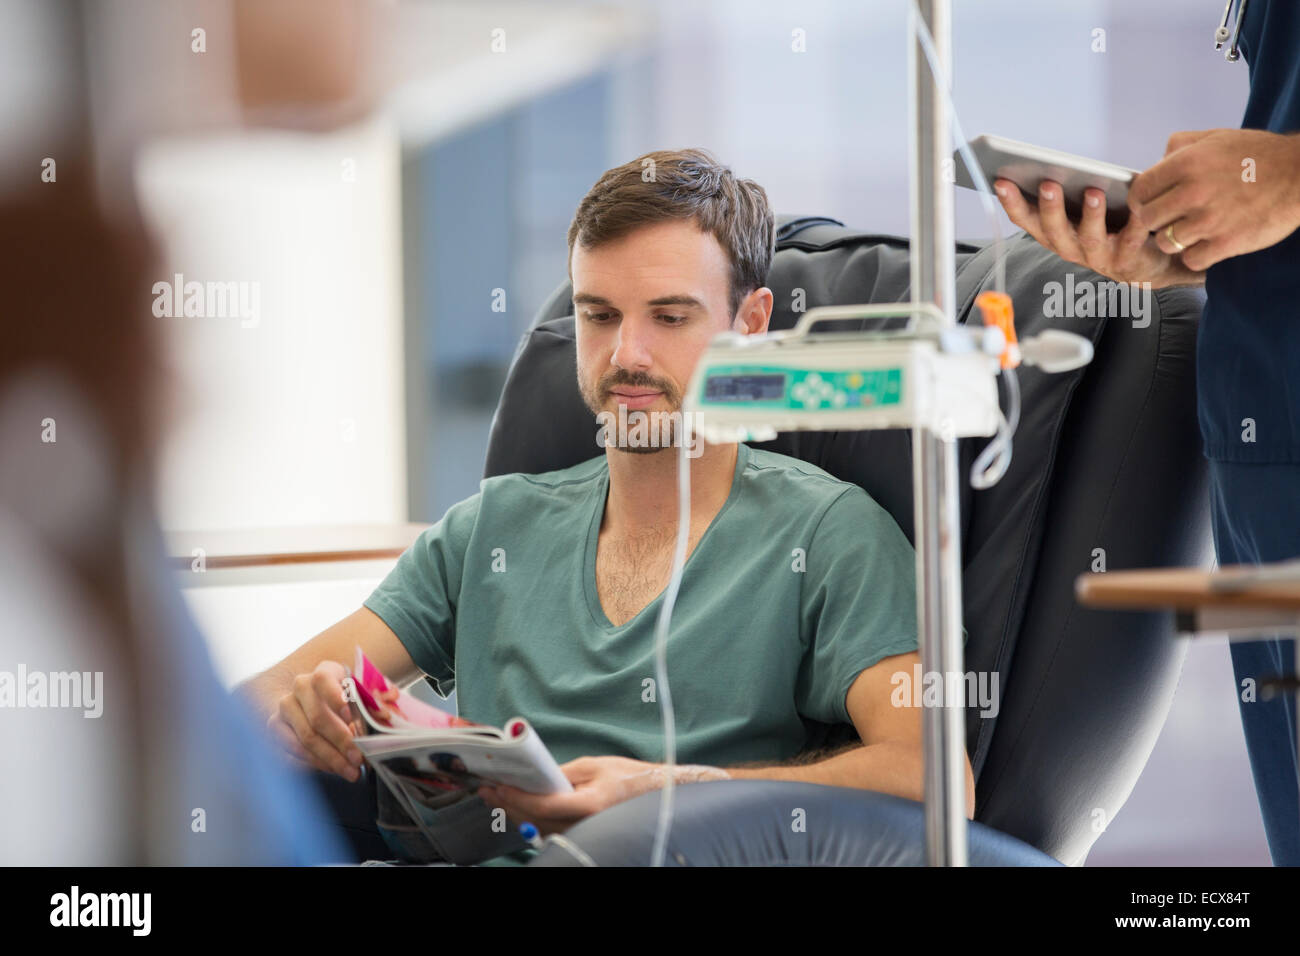 Patient reading magazine, undergoing medical treatment in outpatient clinic - Stock Image